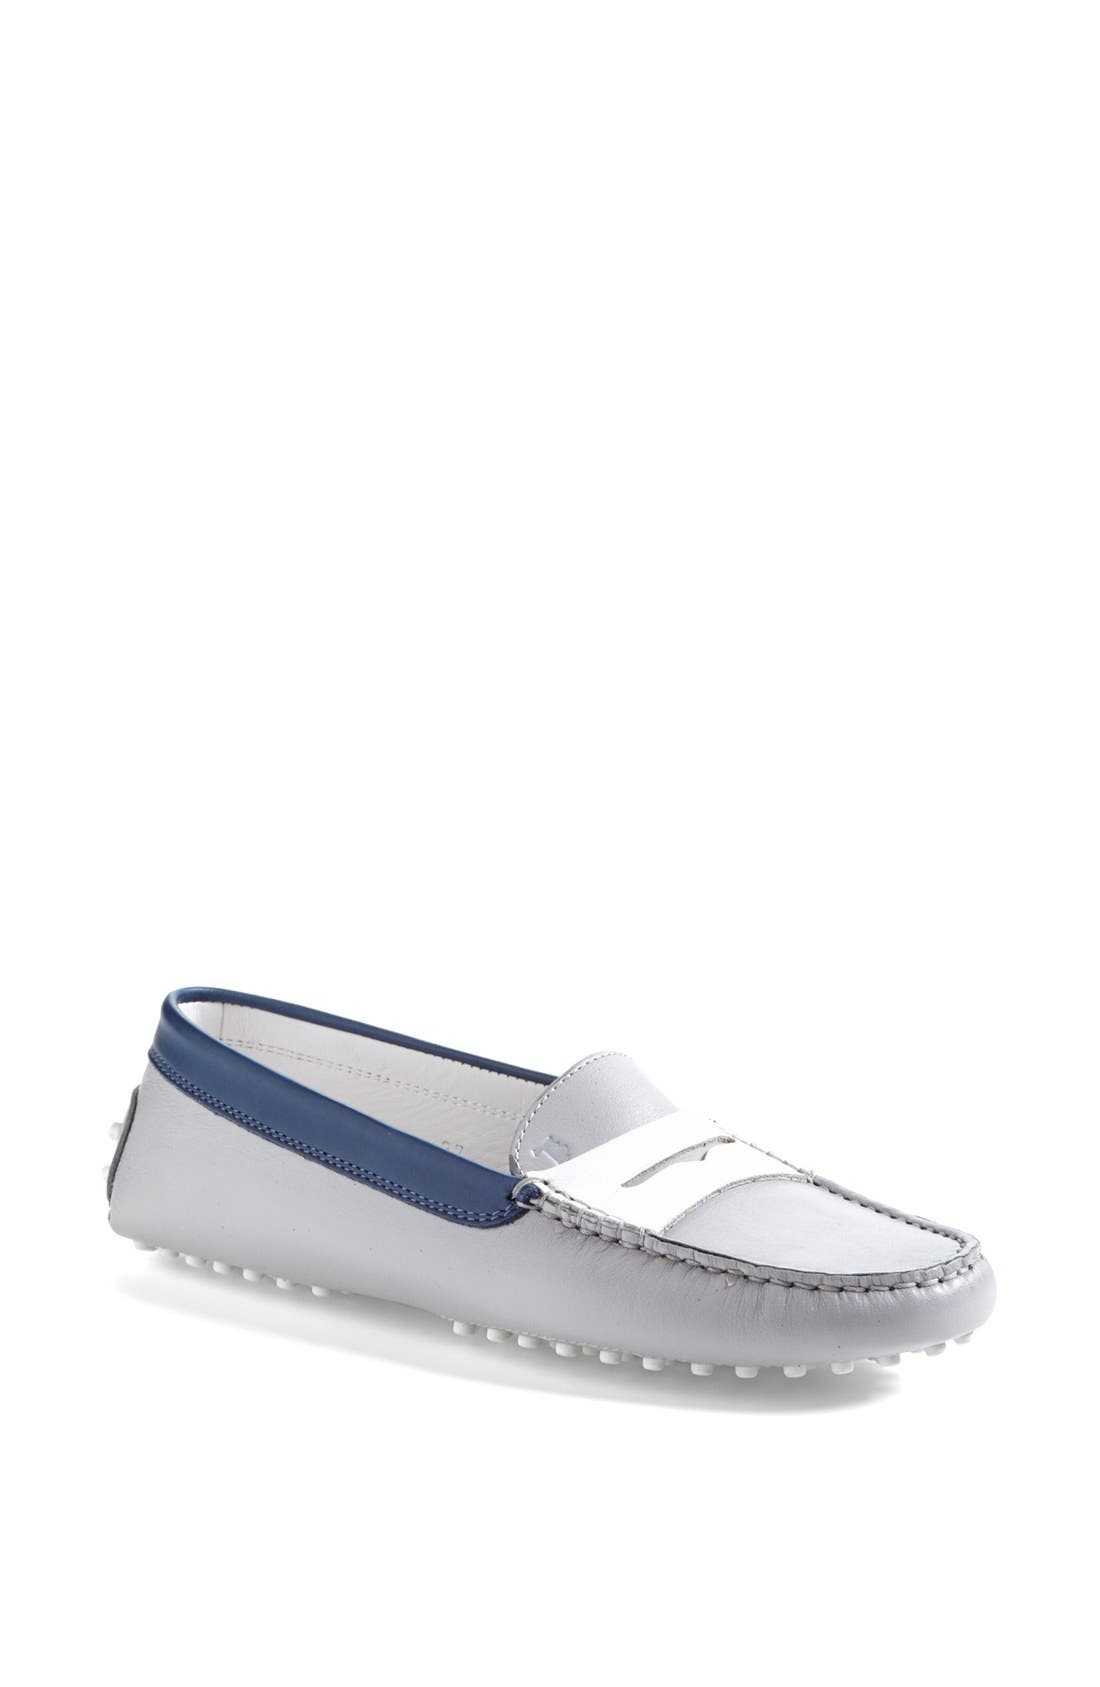 Alternate Image 1 Selected - Tod's 'Gommini' Colorblocked Leather Driving Moccasin